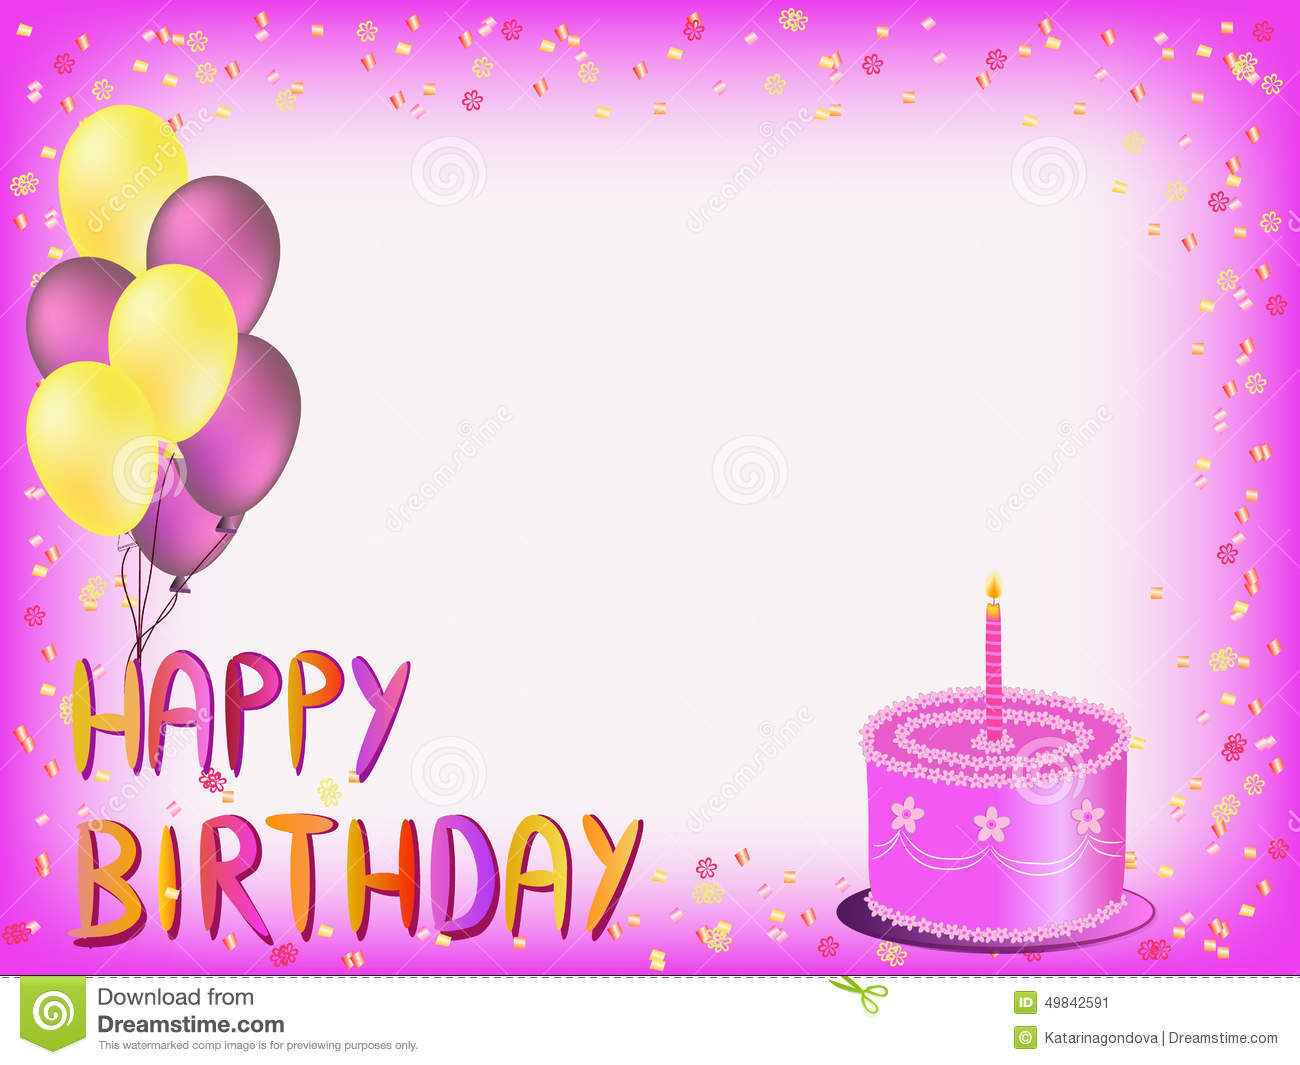 happy birthday card design images ; happy-birthday-wishes-online-birthday-card-wishes-inside-ucwords